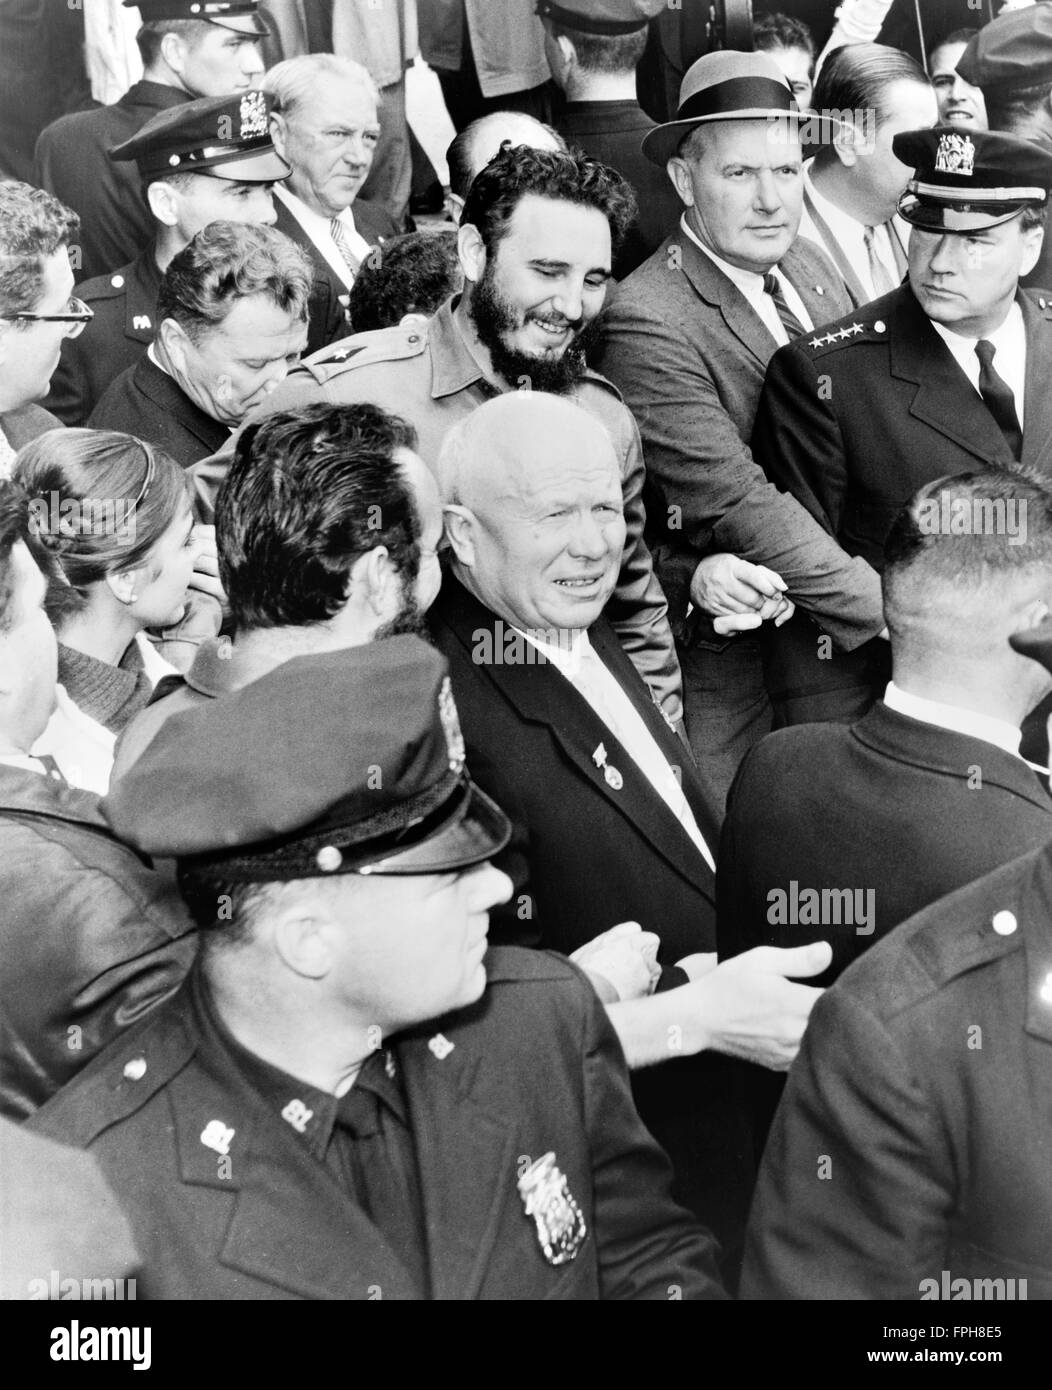 Fidel Castro, Prime Minister of Cuba and Nikita Khrushchev, First Secretary of the Communist Part of the Soviet - Stock Image